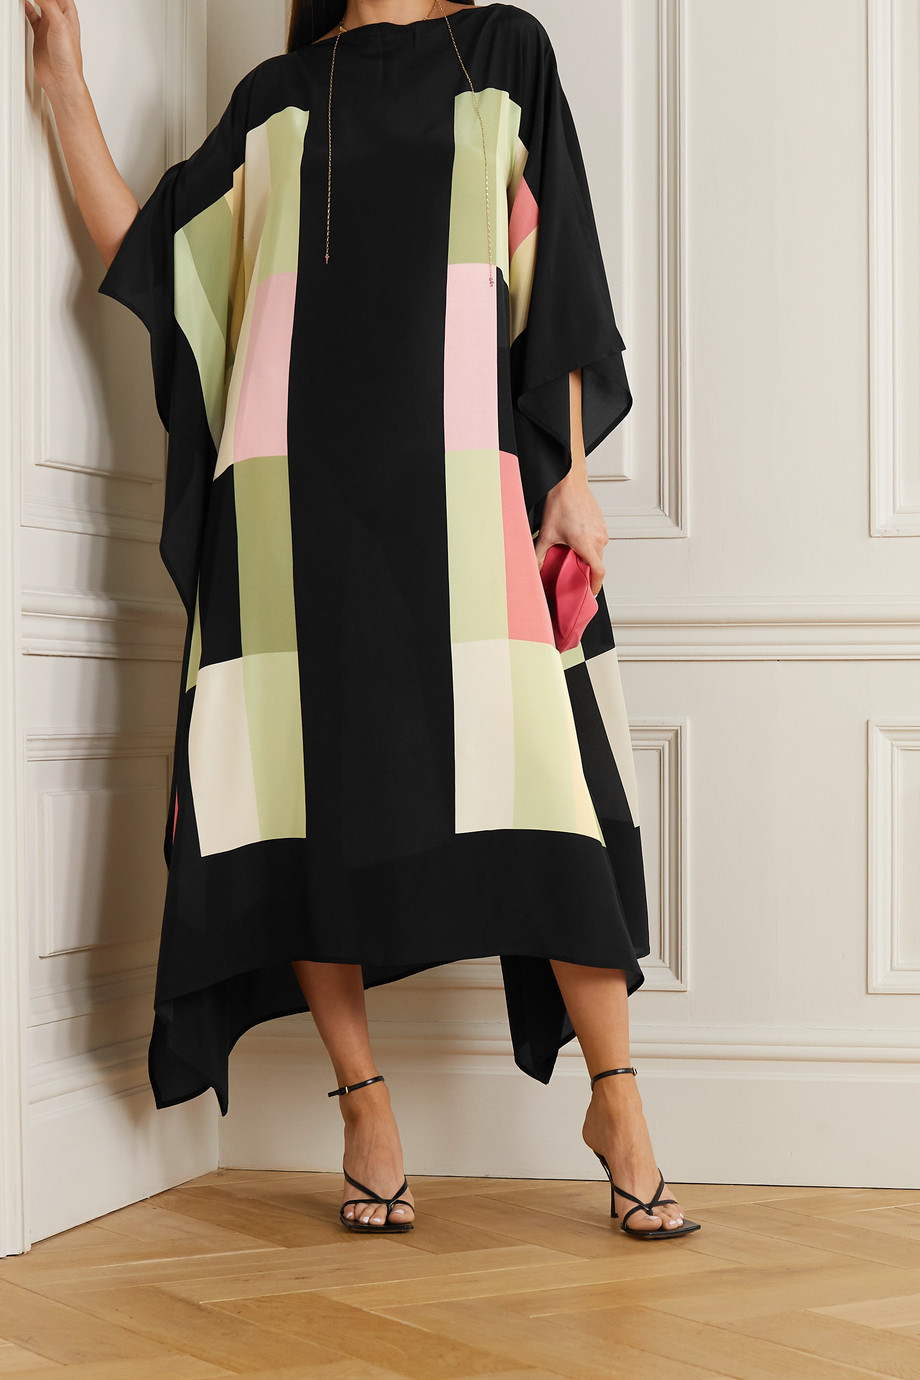 LOUISA PARRIS + NET SUSTAIN Sinatra printed silk crepe de chine midi dress